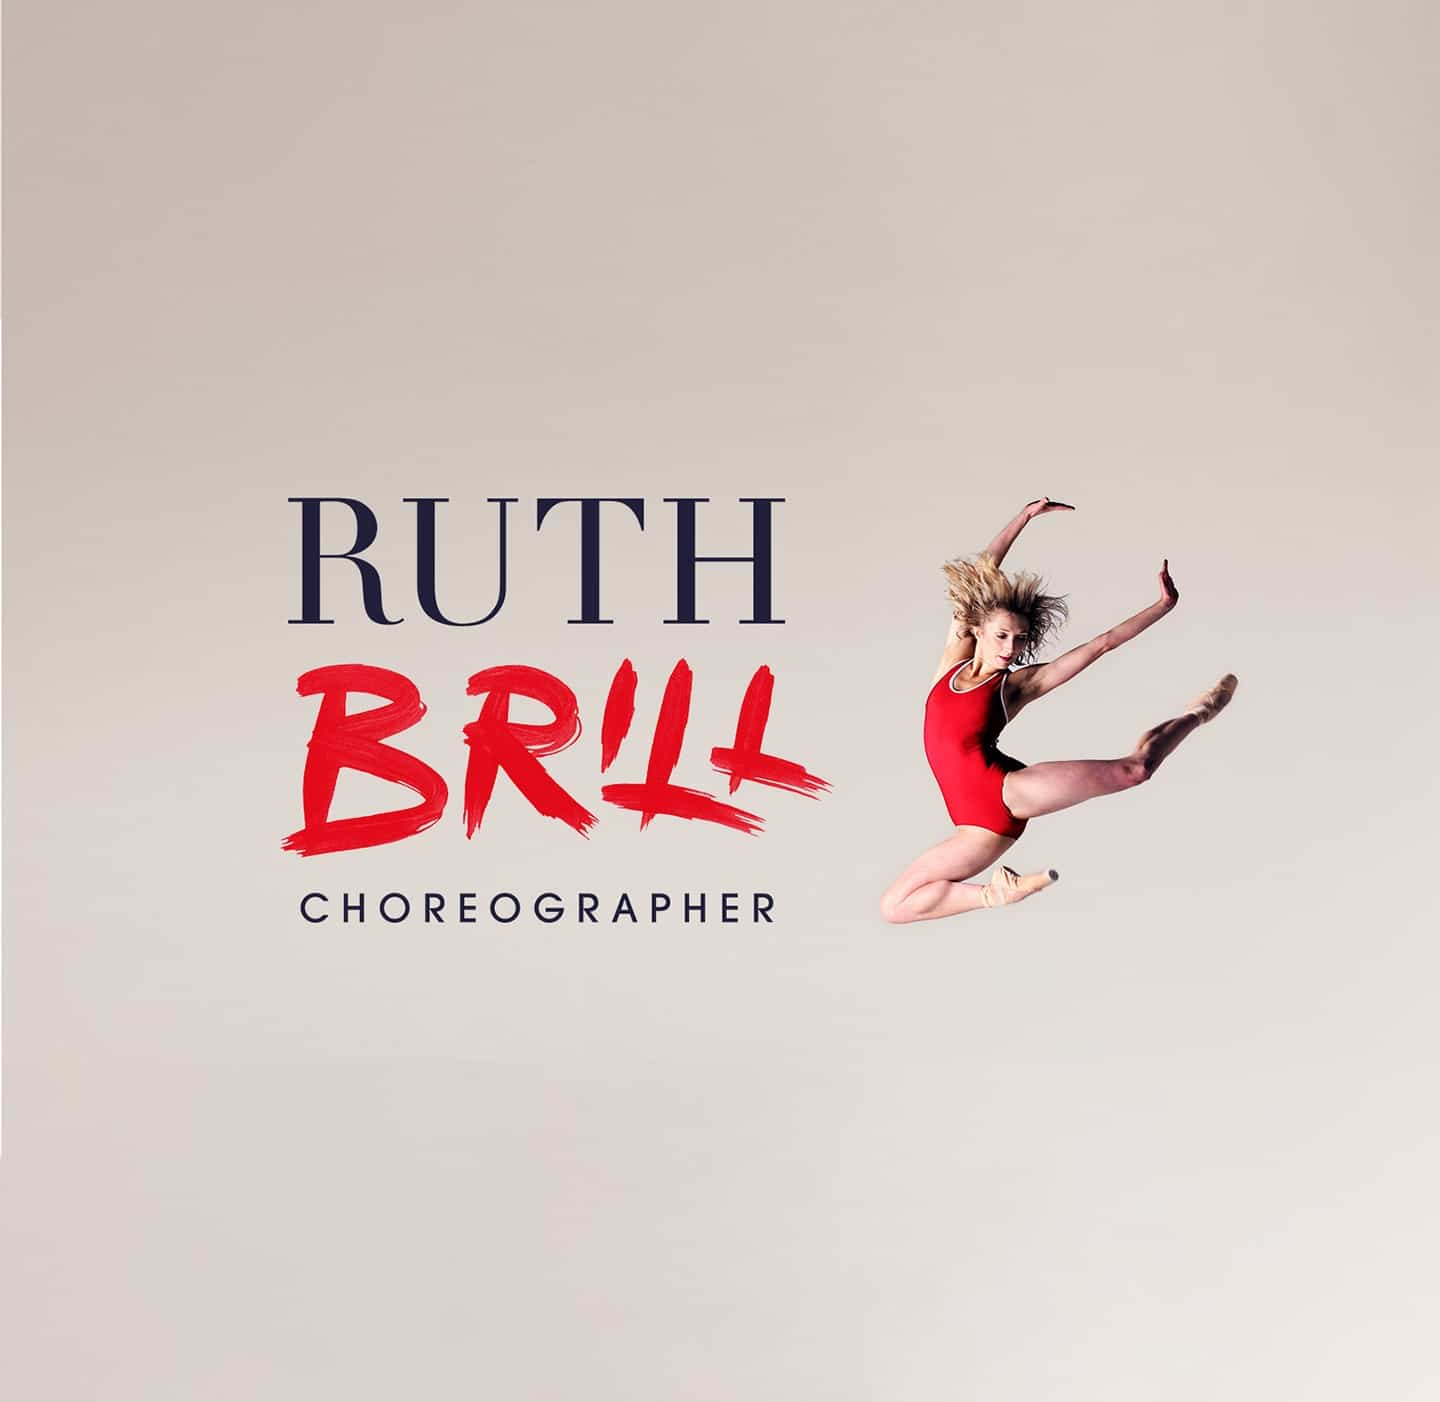 Final Logo design for Ruth Brill choreographer